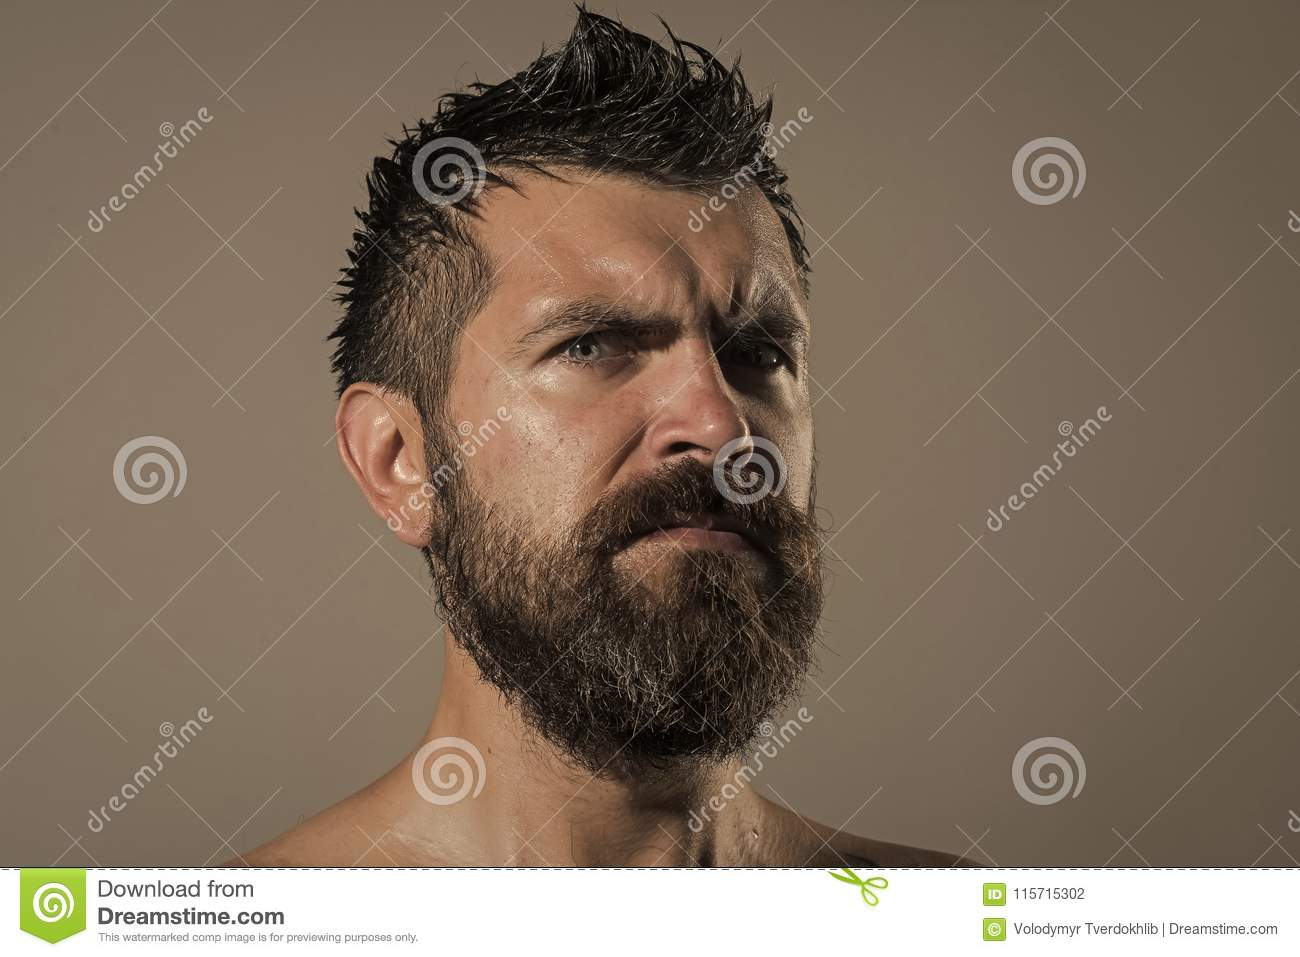 Serious face guy naked pic 636